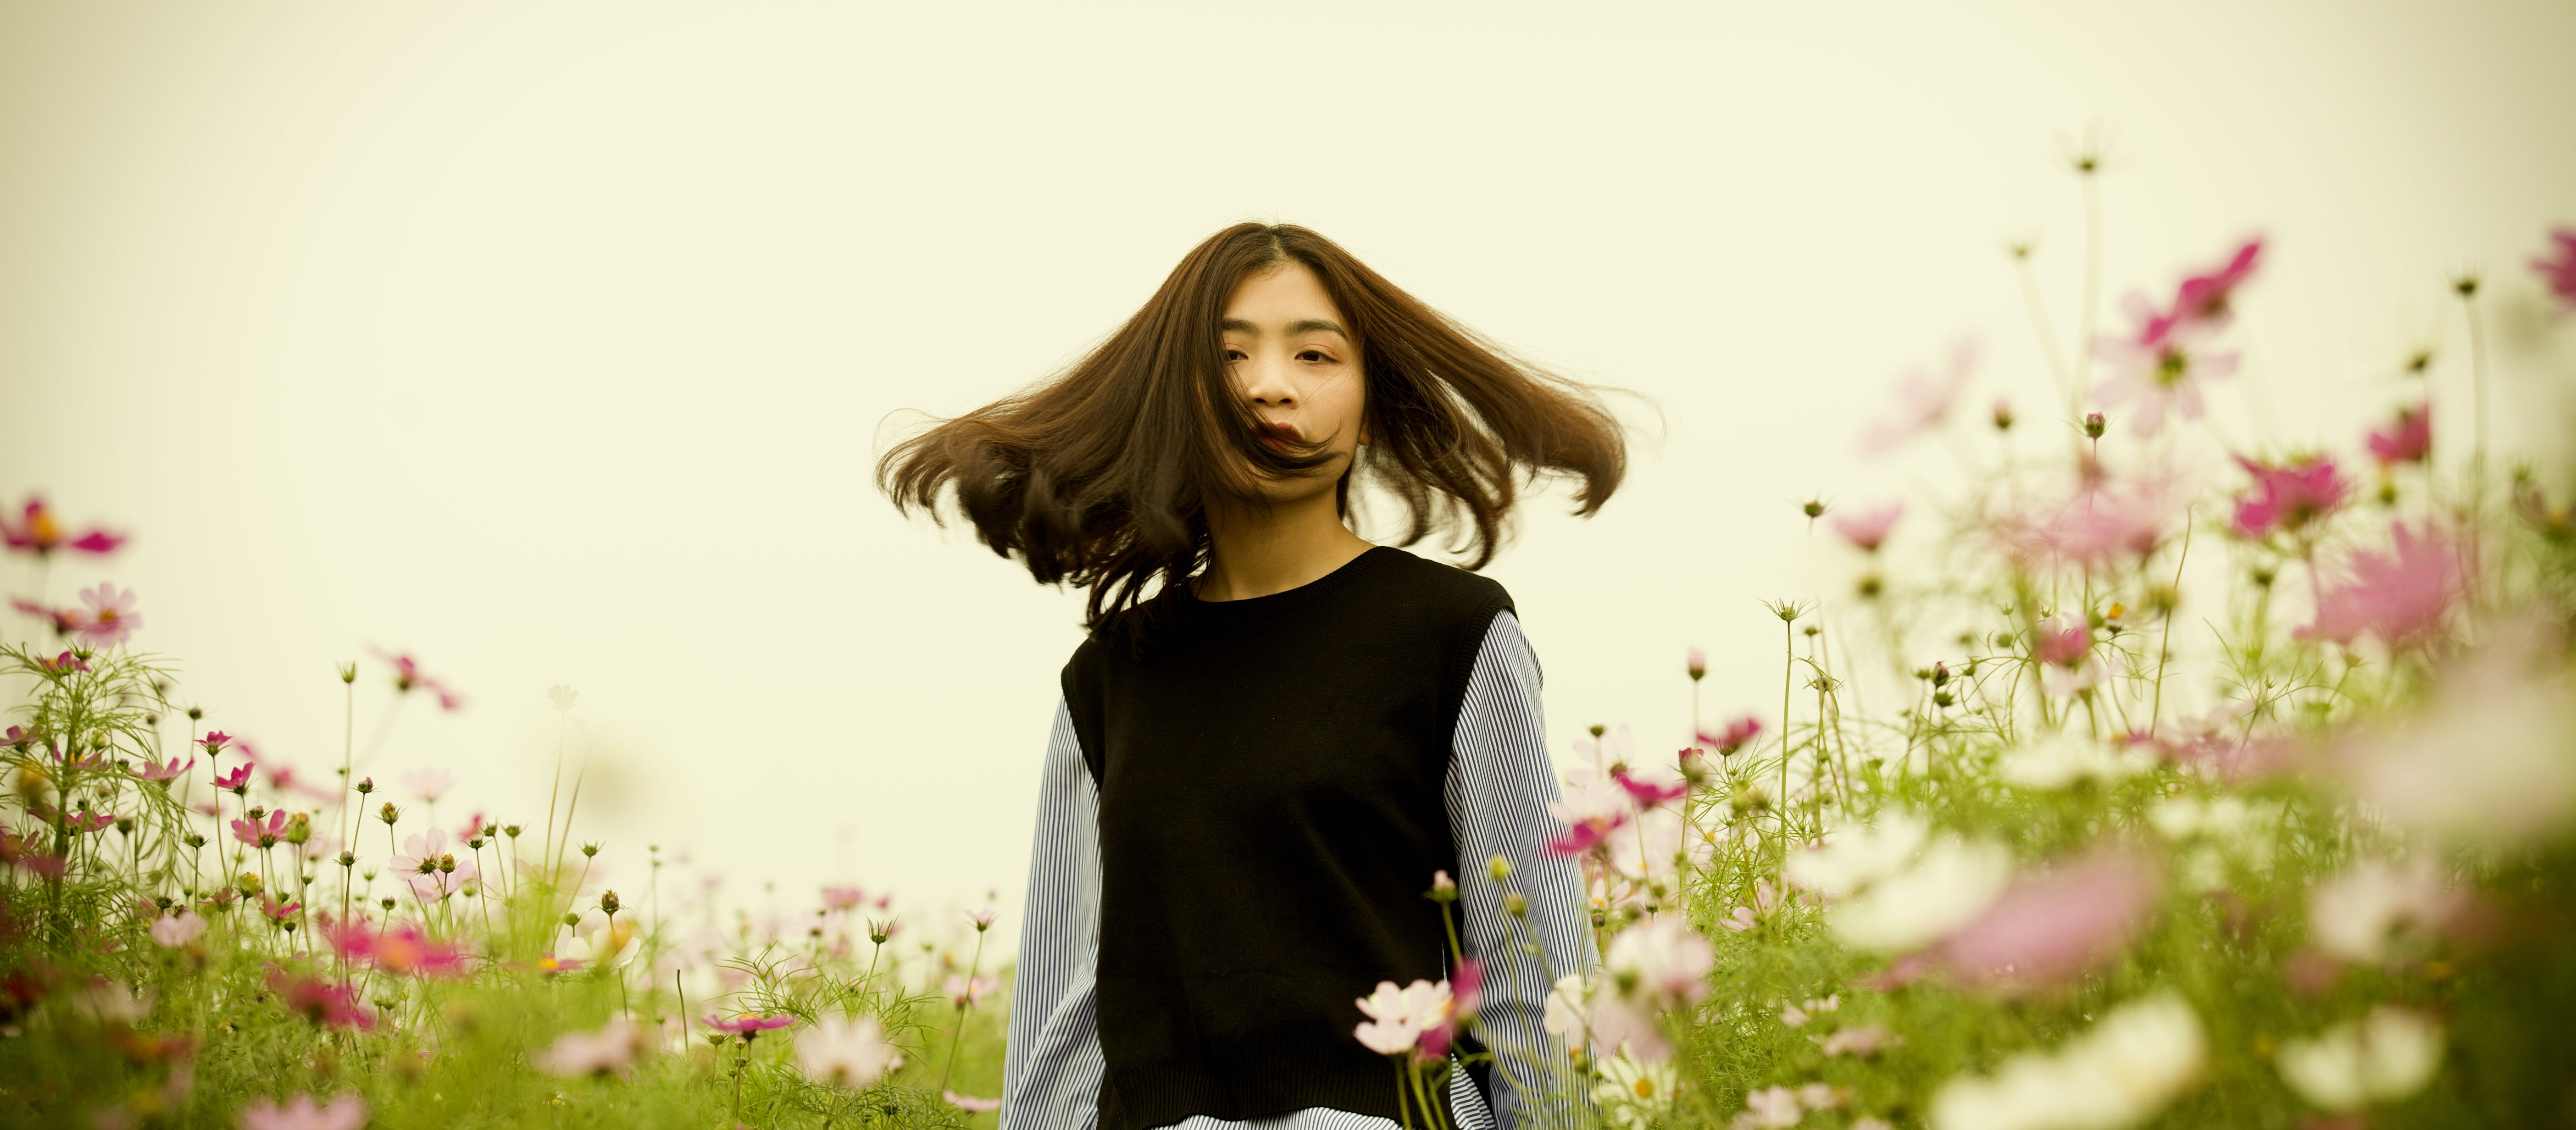 Girl on White and Pink Cosmos Flower Field Photography